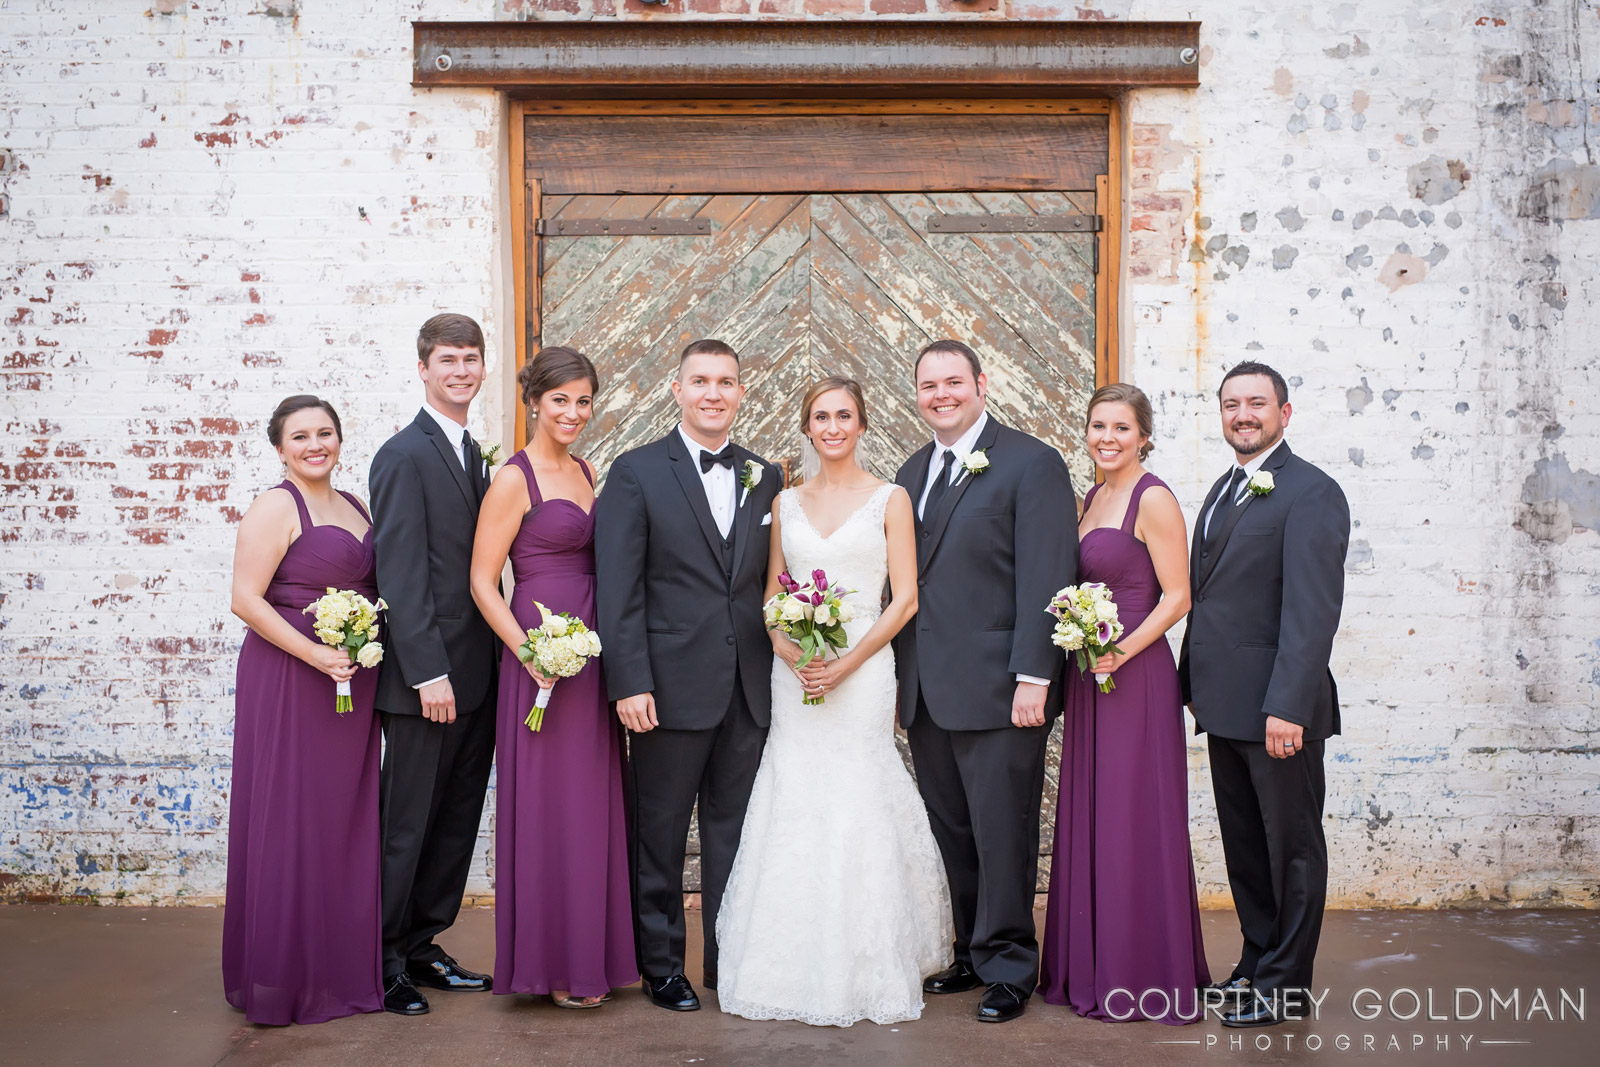 Atlanta-Wedding-Photography-by-Courtney-Goldman-60.jpg